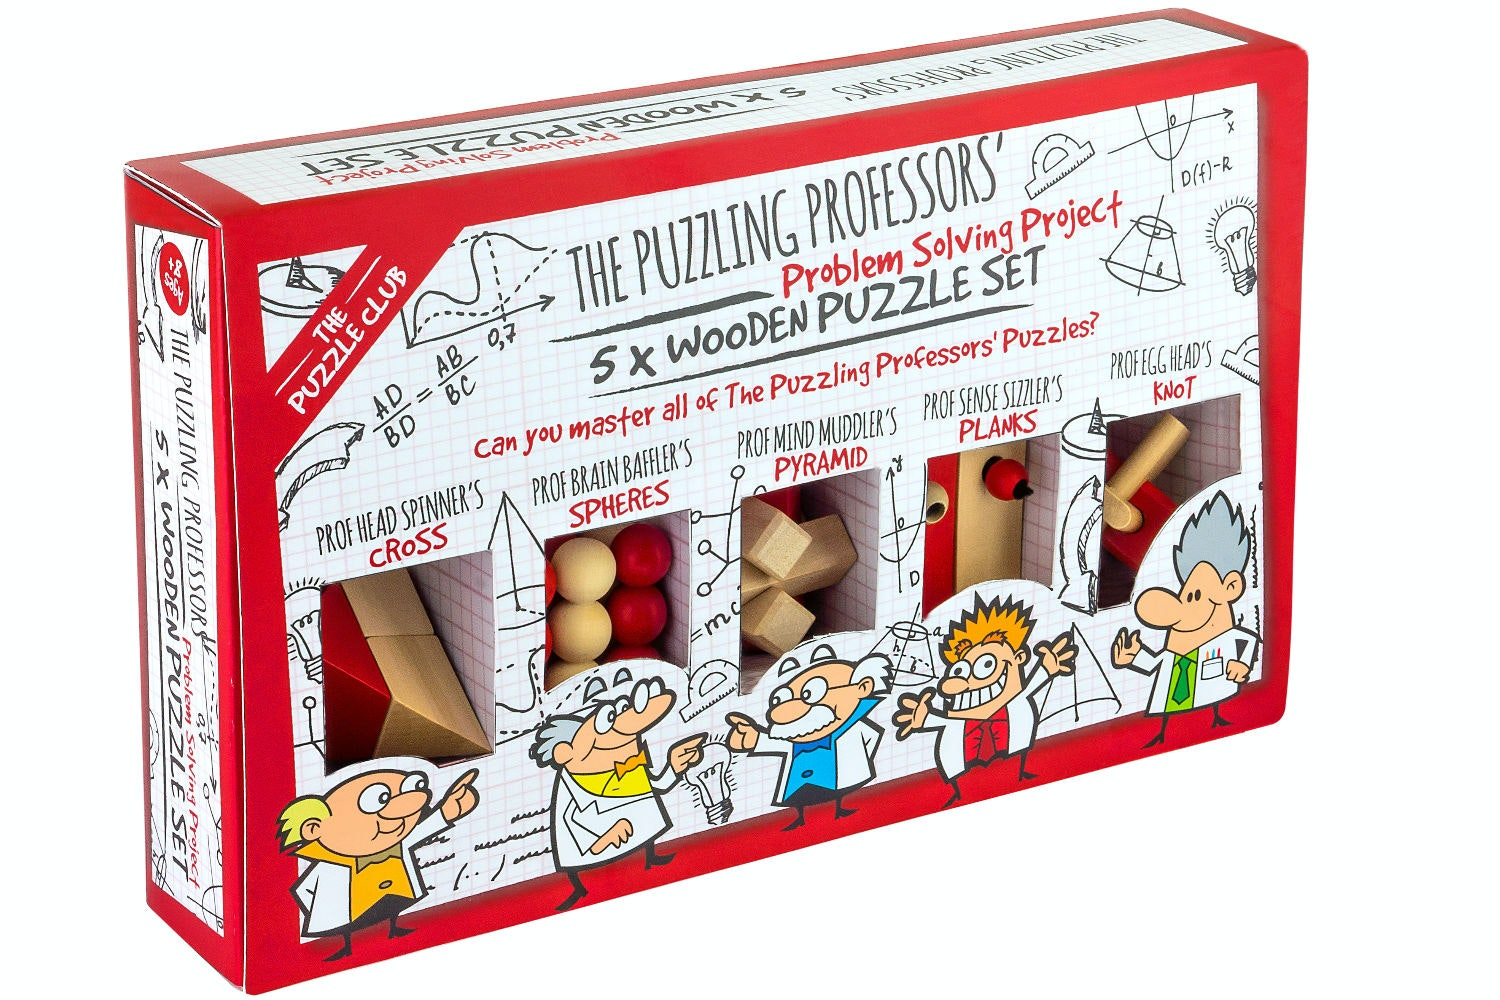 Puzzling Prof 5 Wooden Puzzles